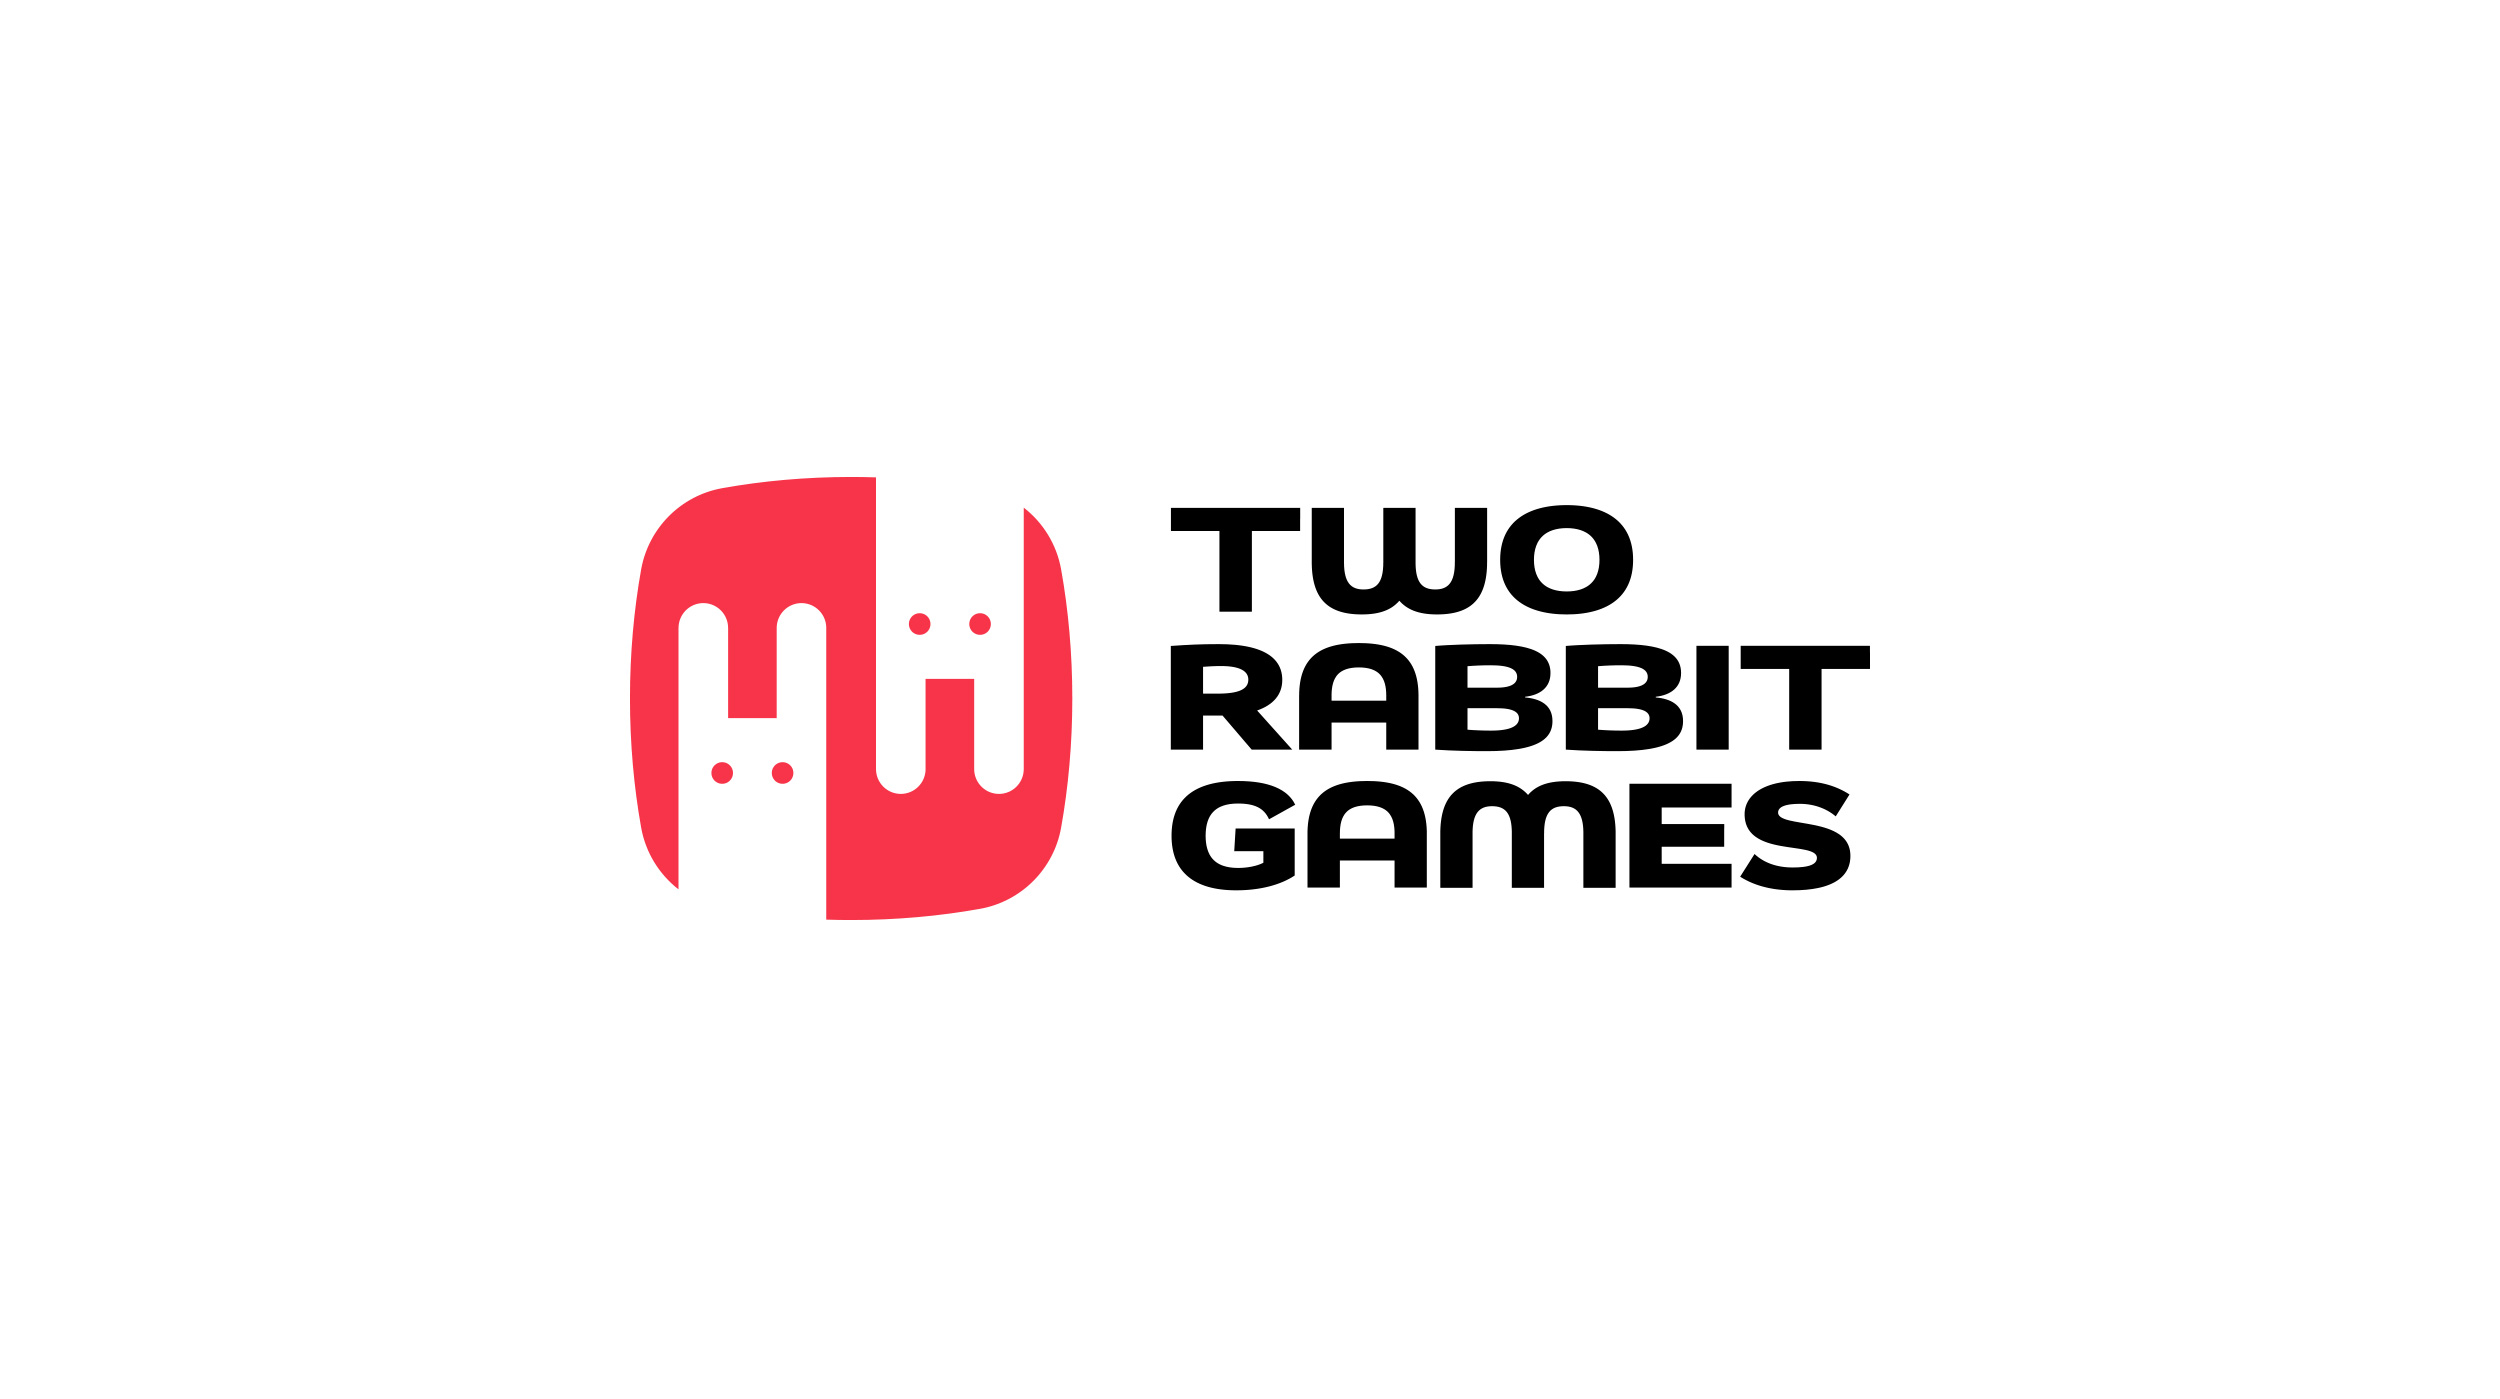 Two-Rabbit-Games_Visuals_red